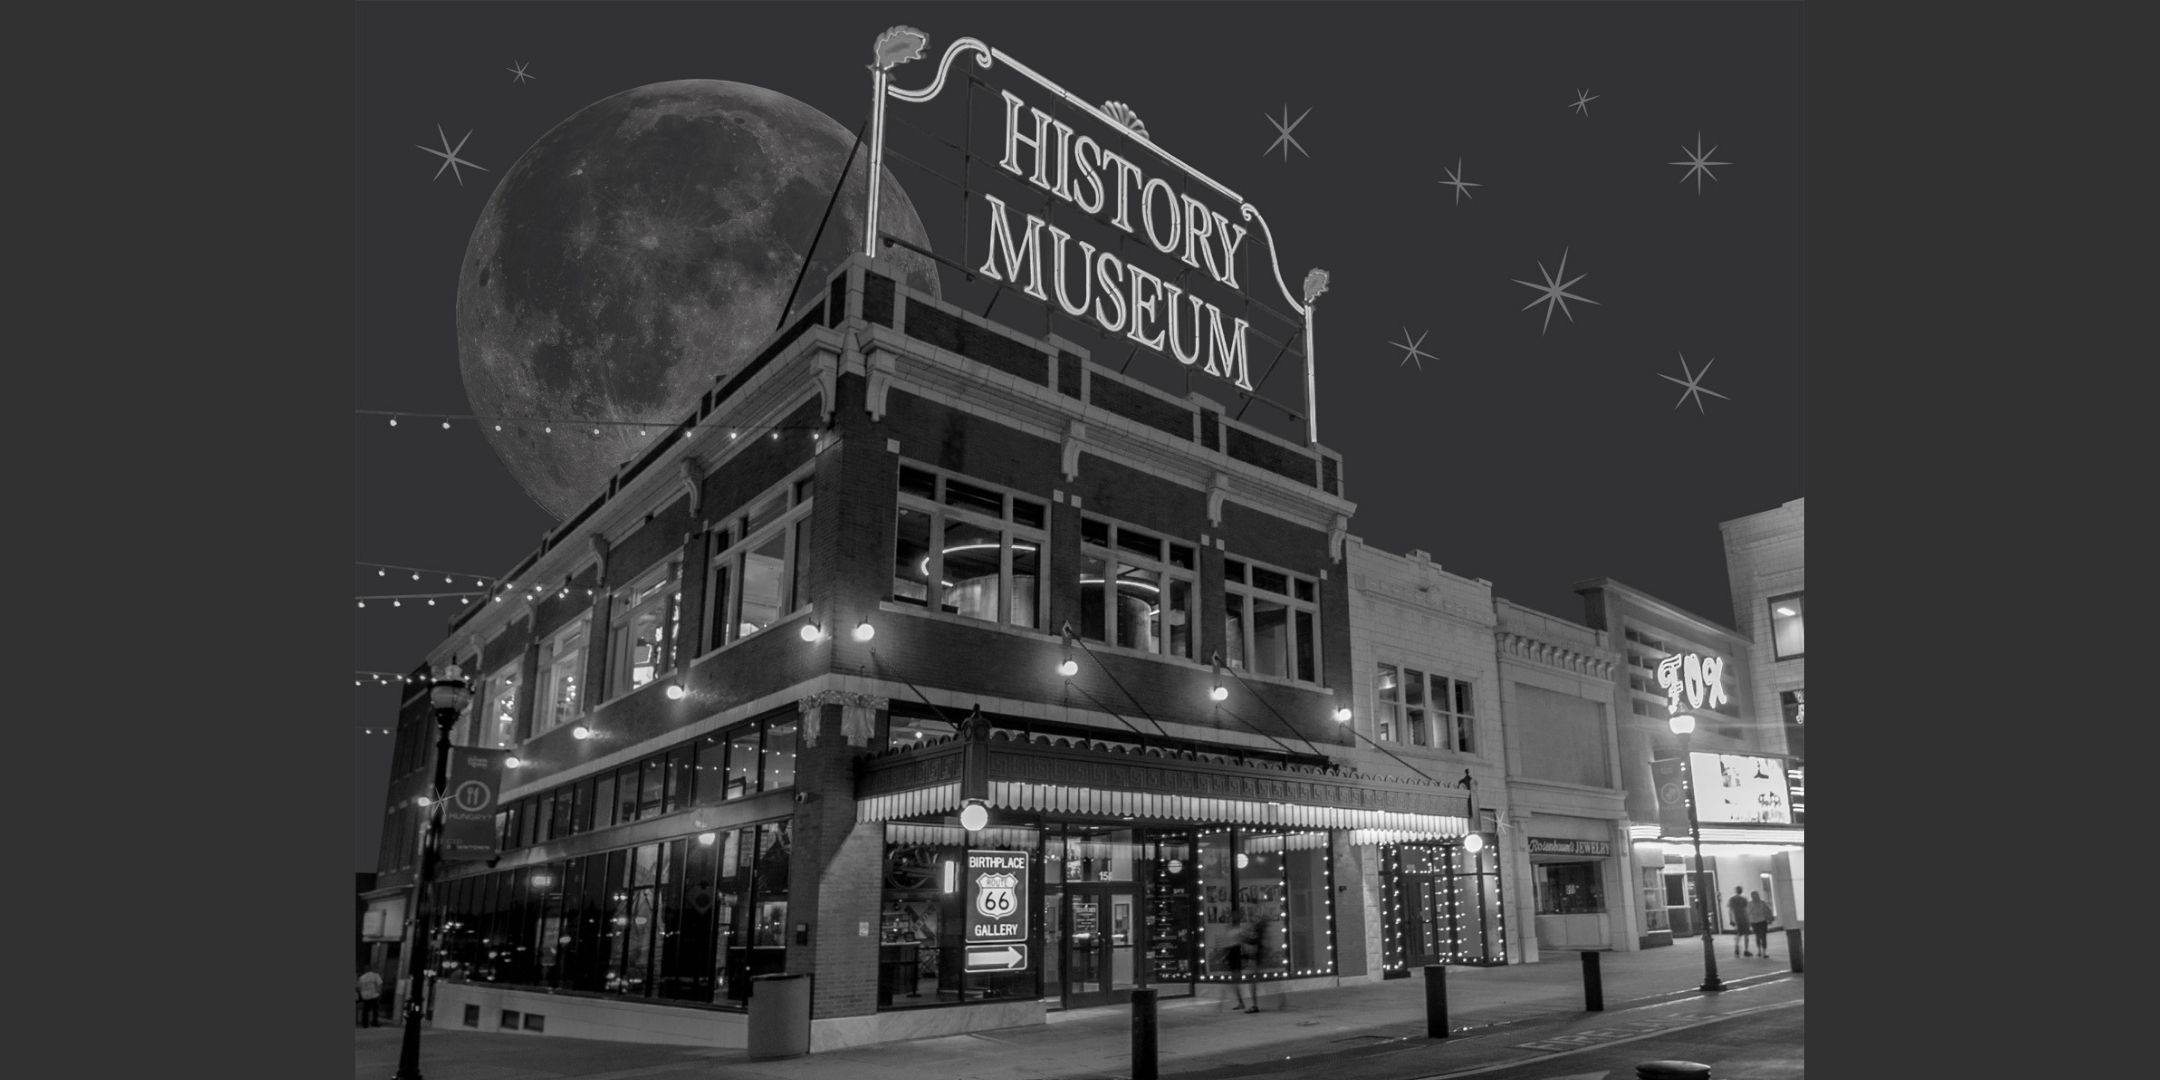 Grand opening of the History Museum in Springfield, MO